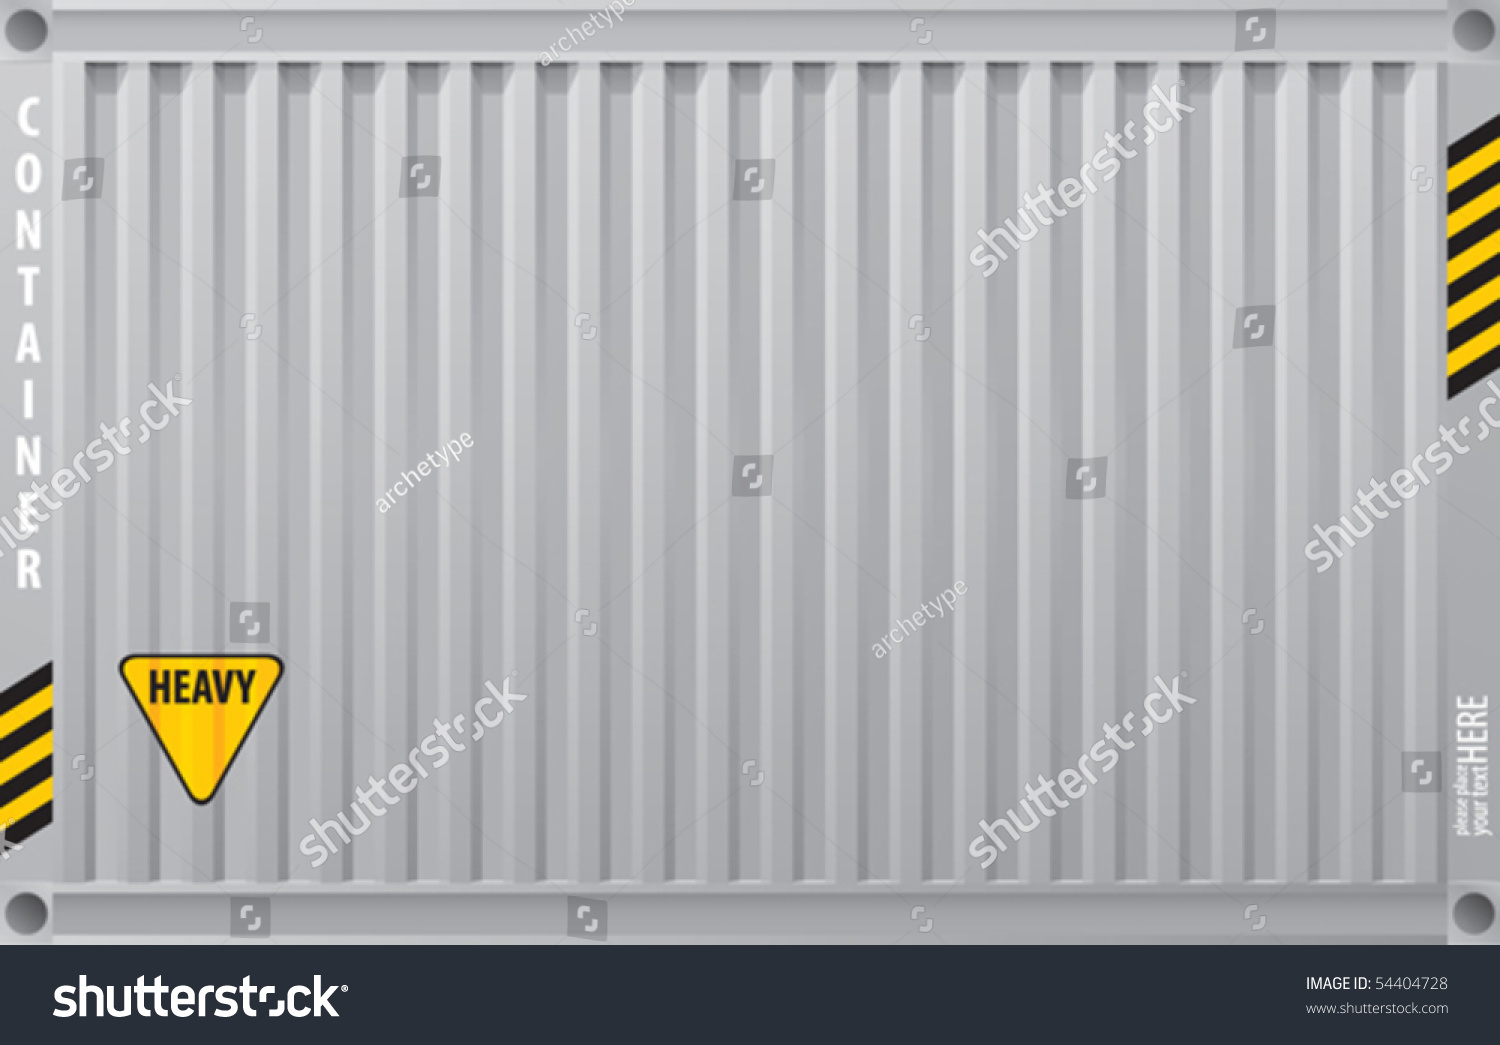 Metal Surface Cargo Container Vector Background Stock